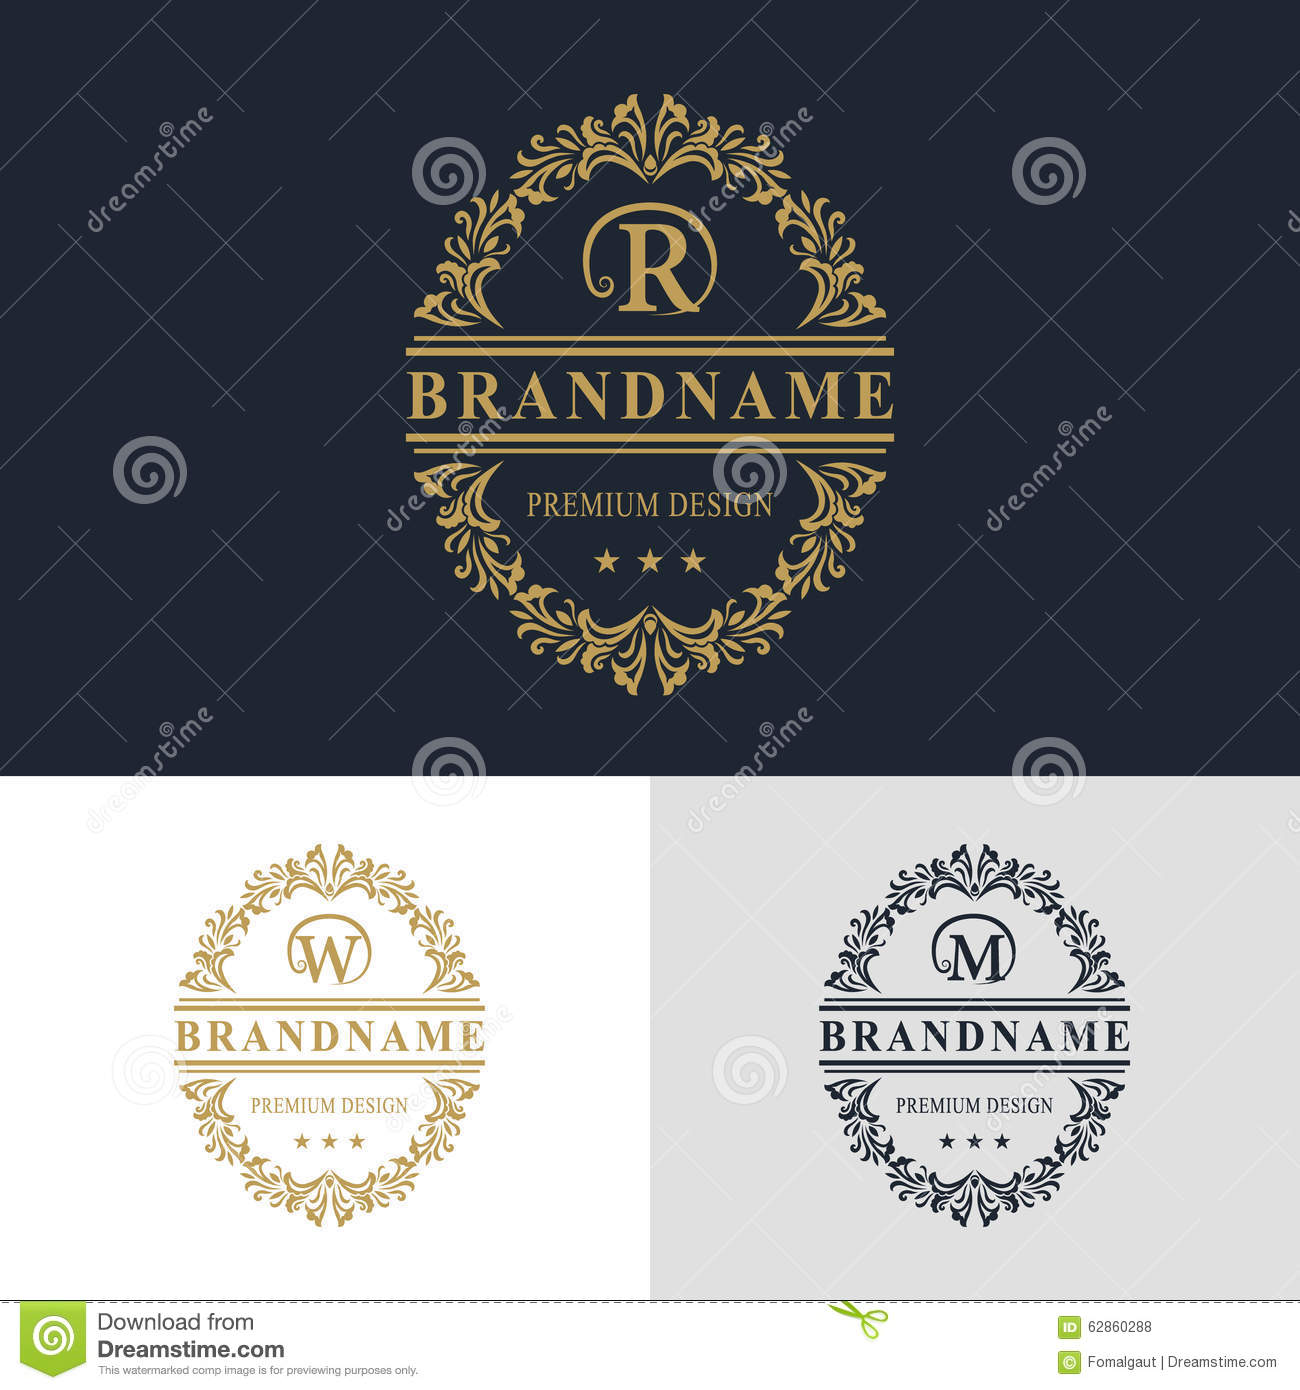 monogram design elements  graceful template  calligraphic elegant line art logo design  letter